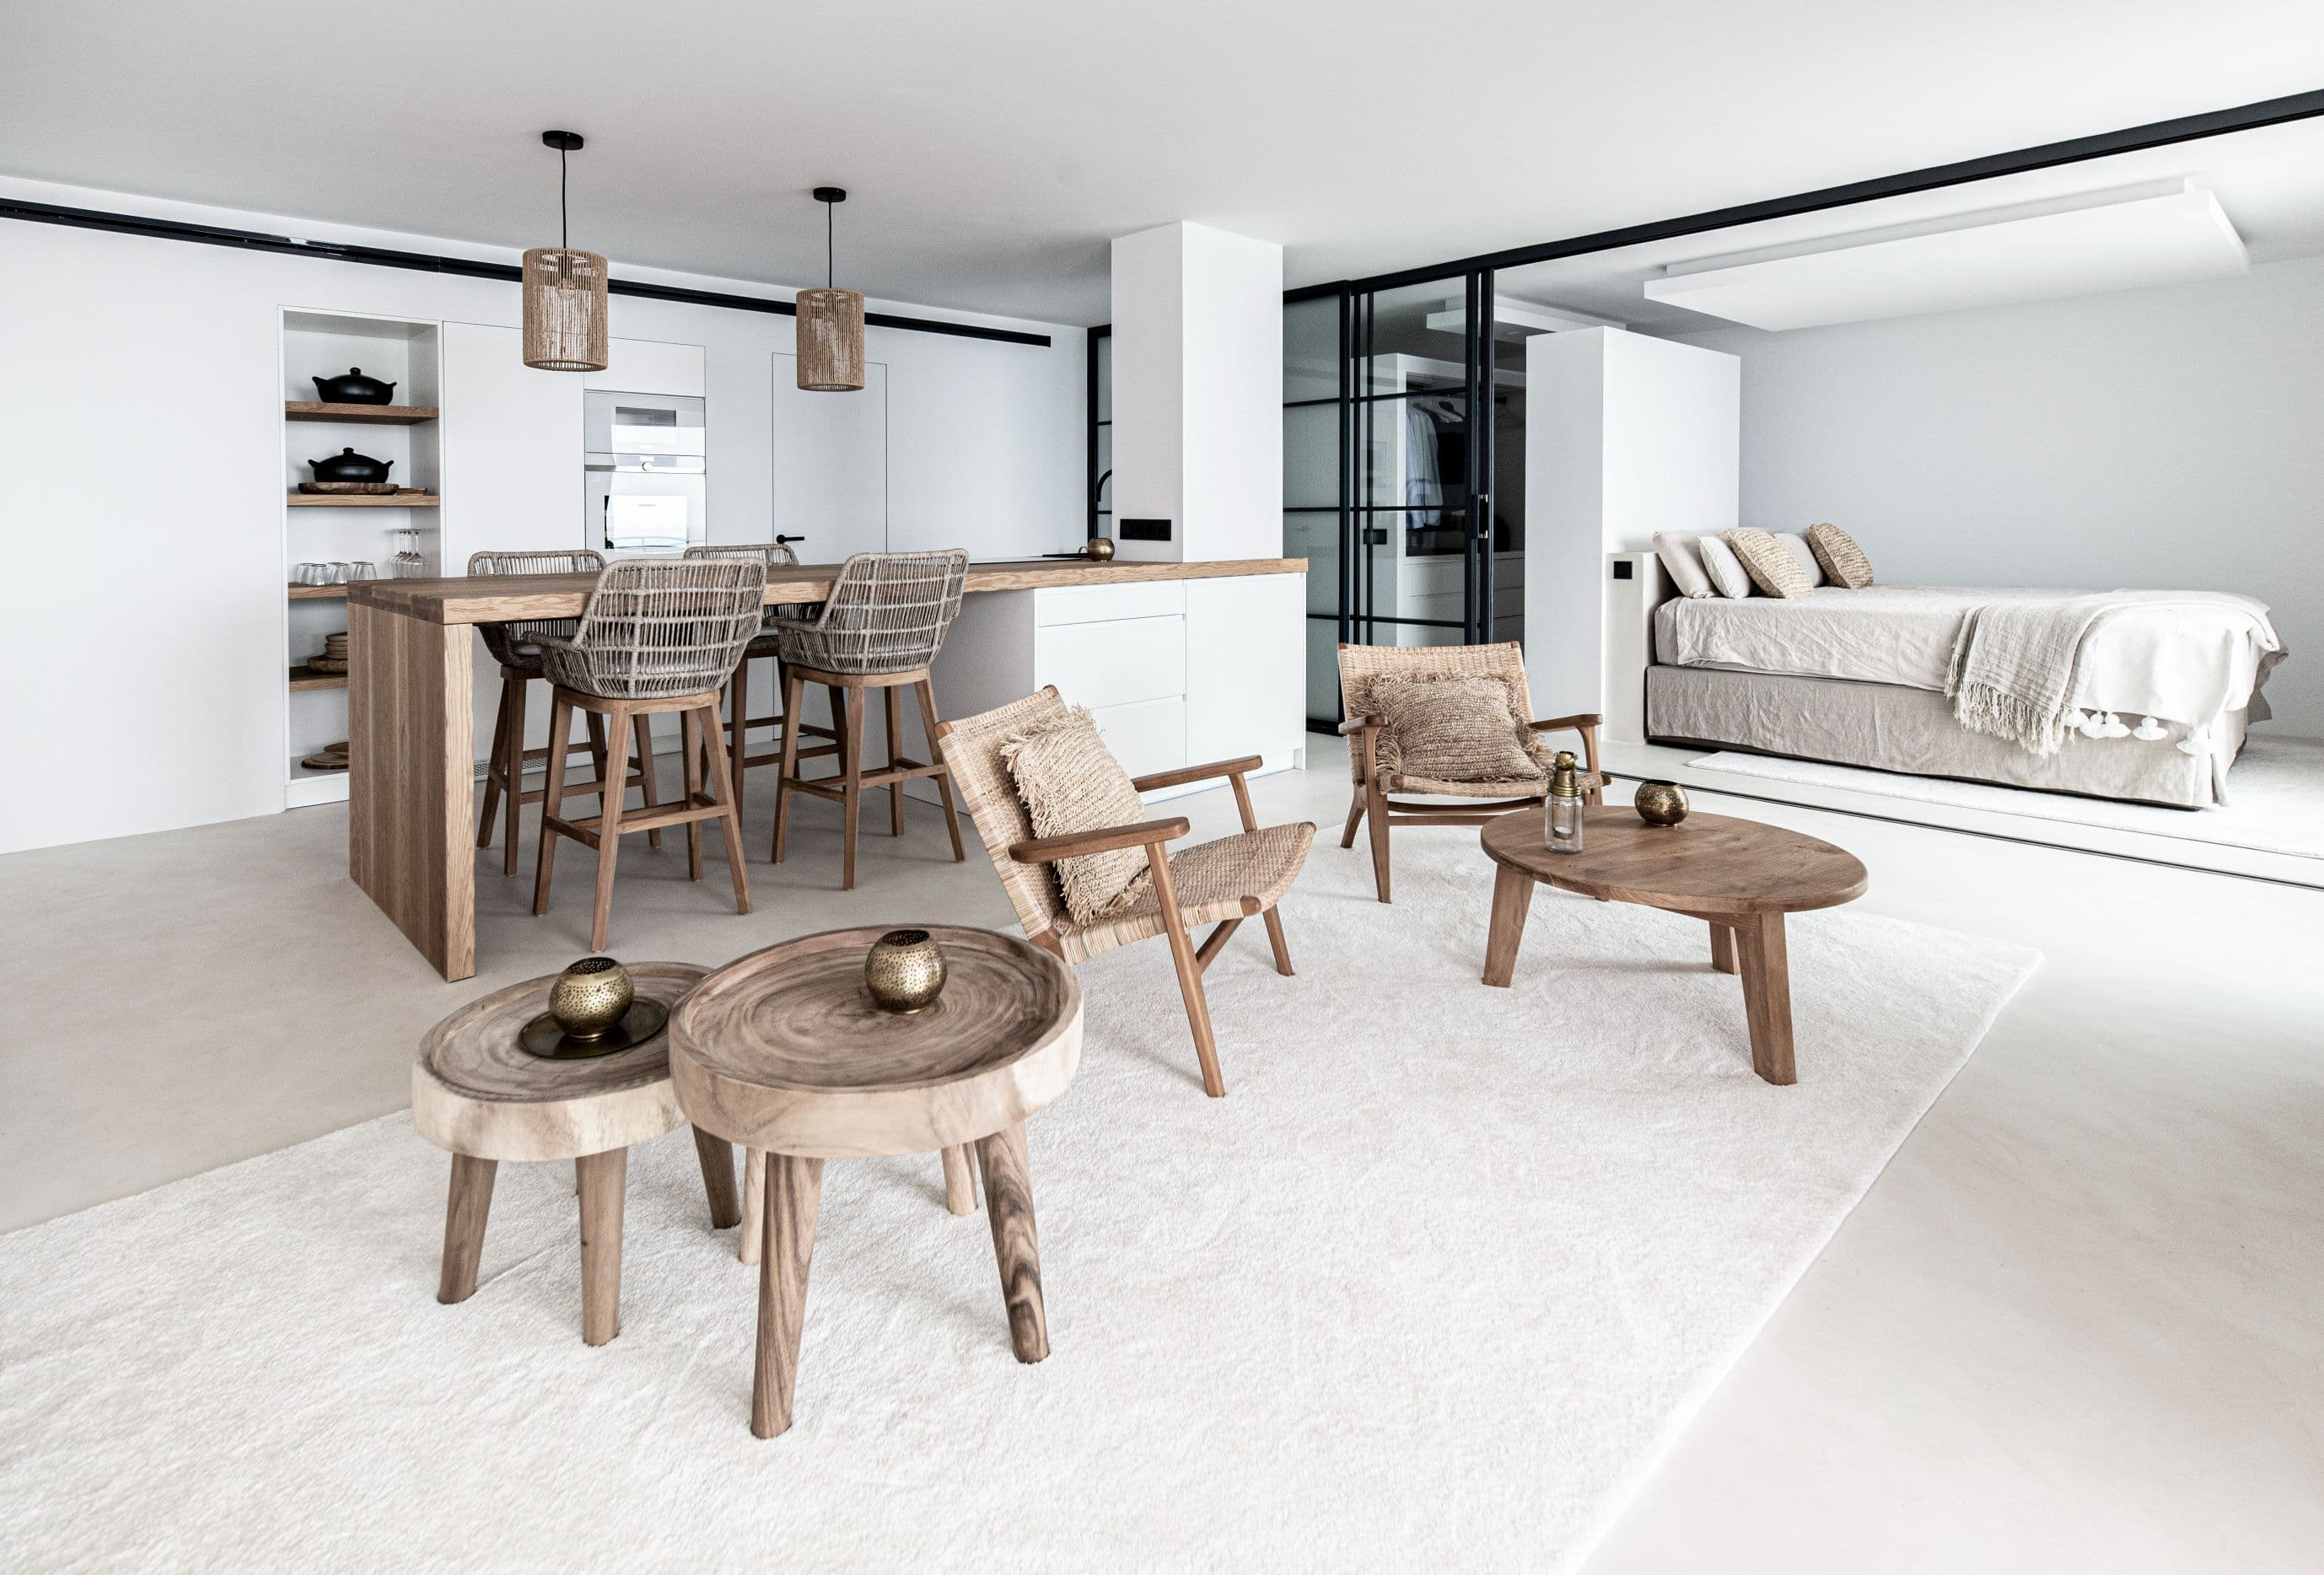 Zoco Home Natural Materials, living room and kitchen